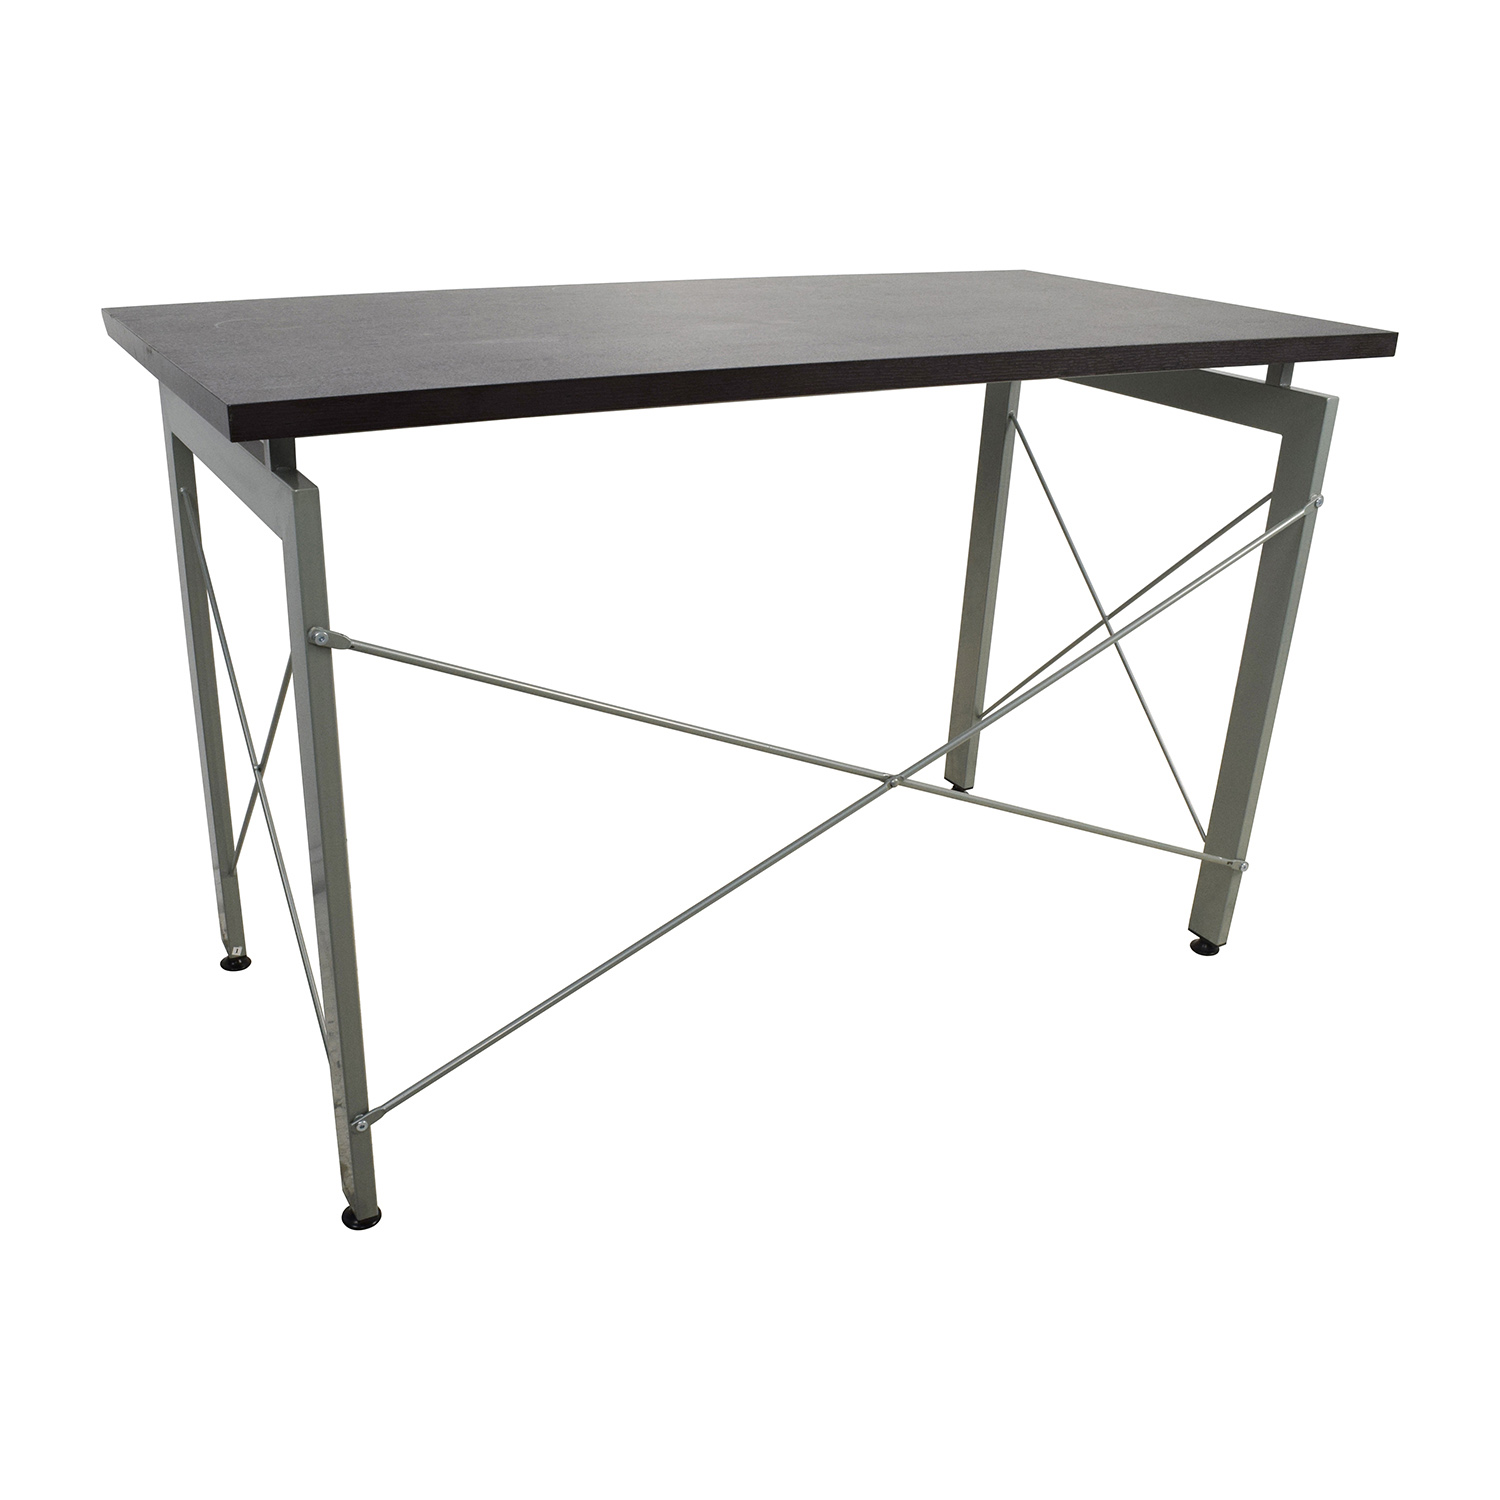 39% OFF All Modern All Modern Wood and Metal Desk Tables